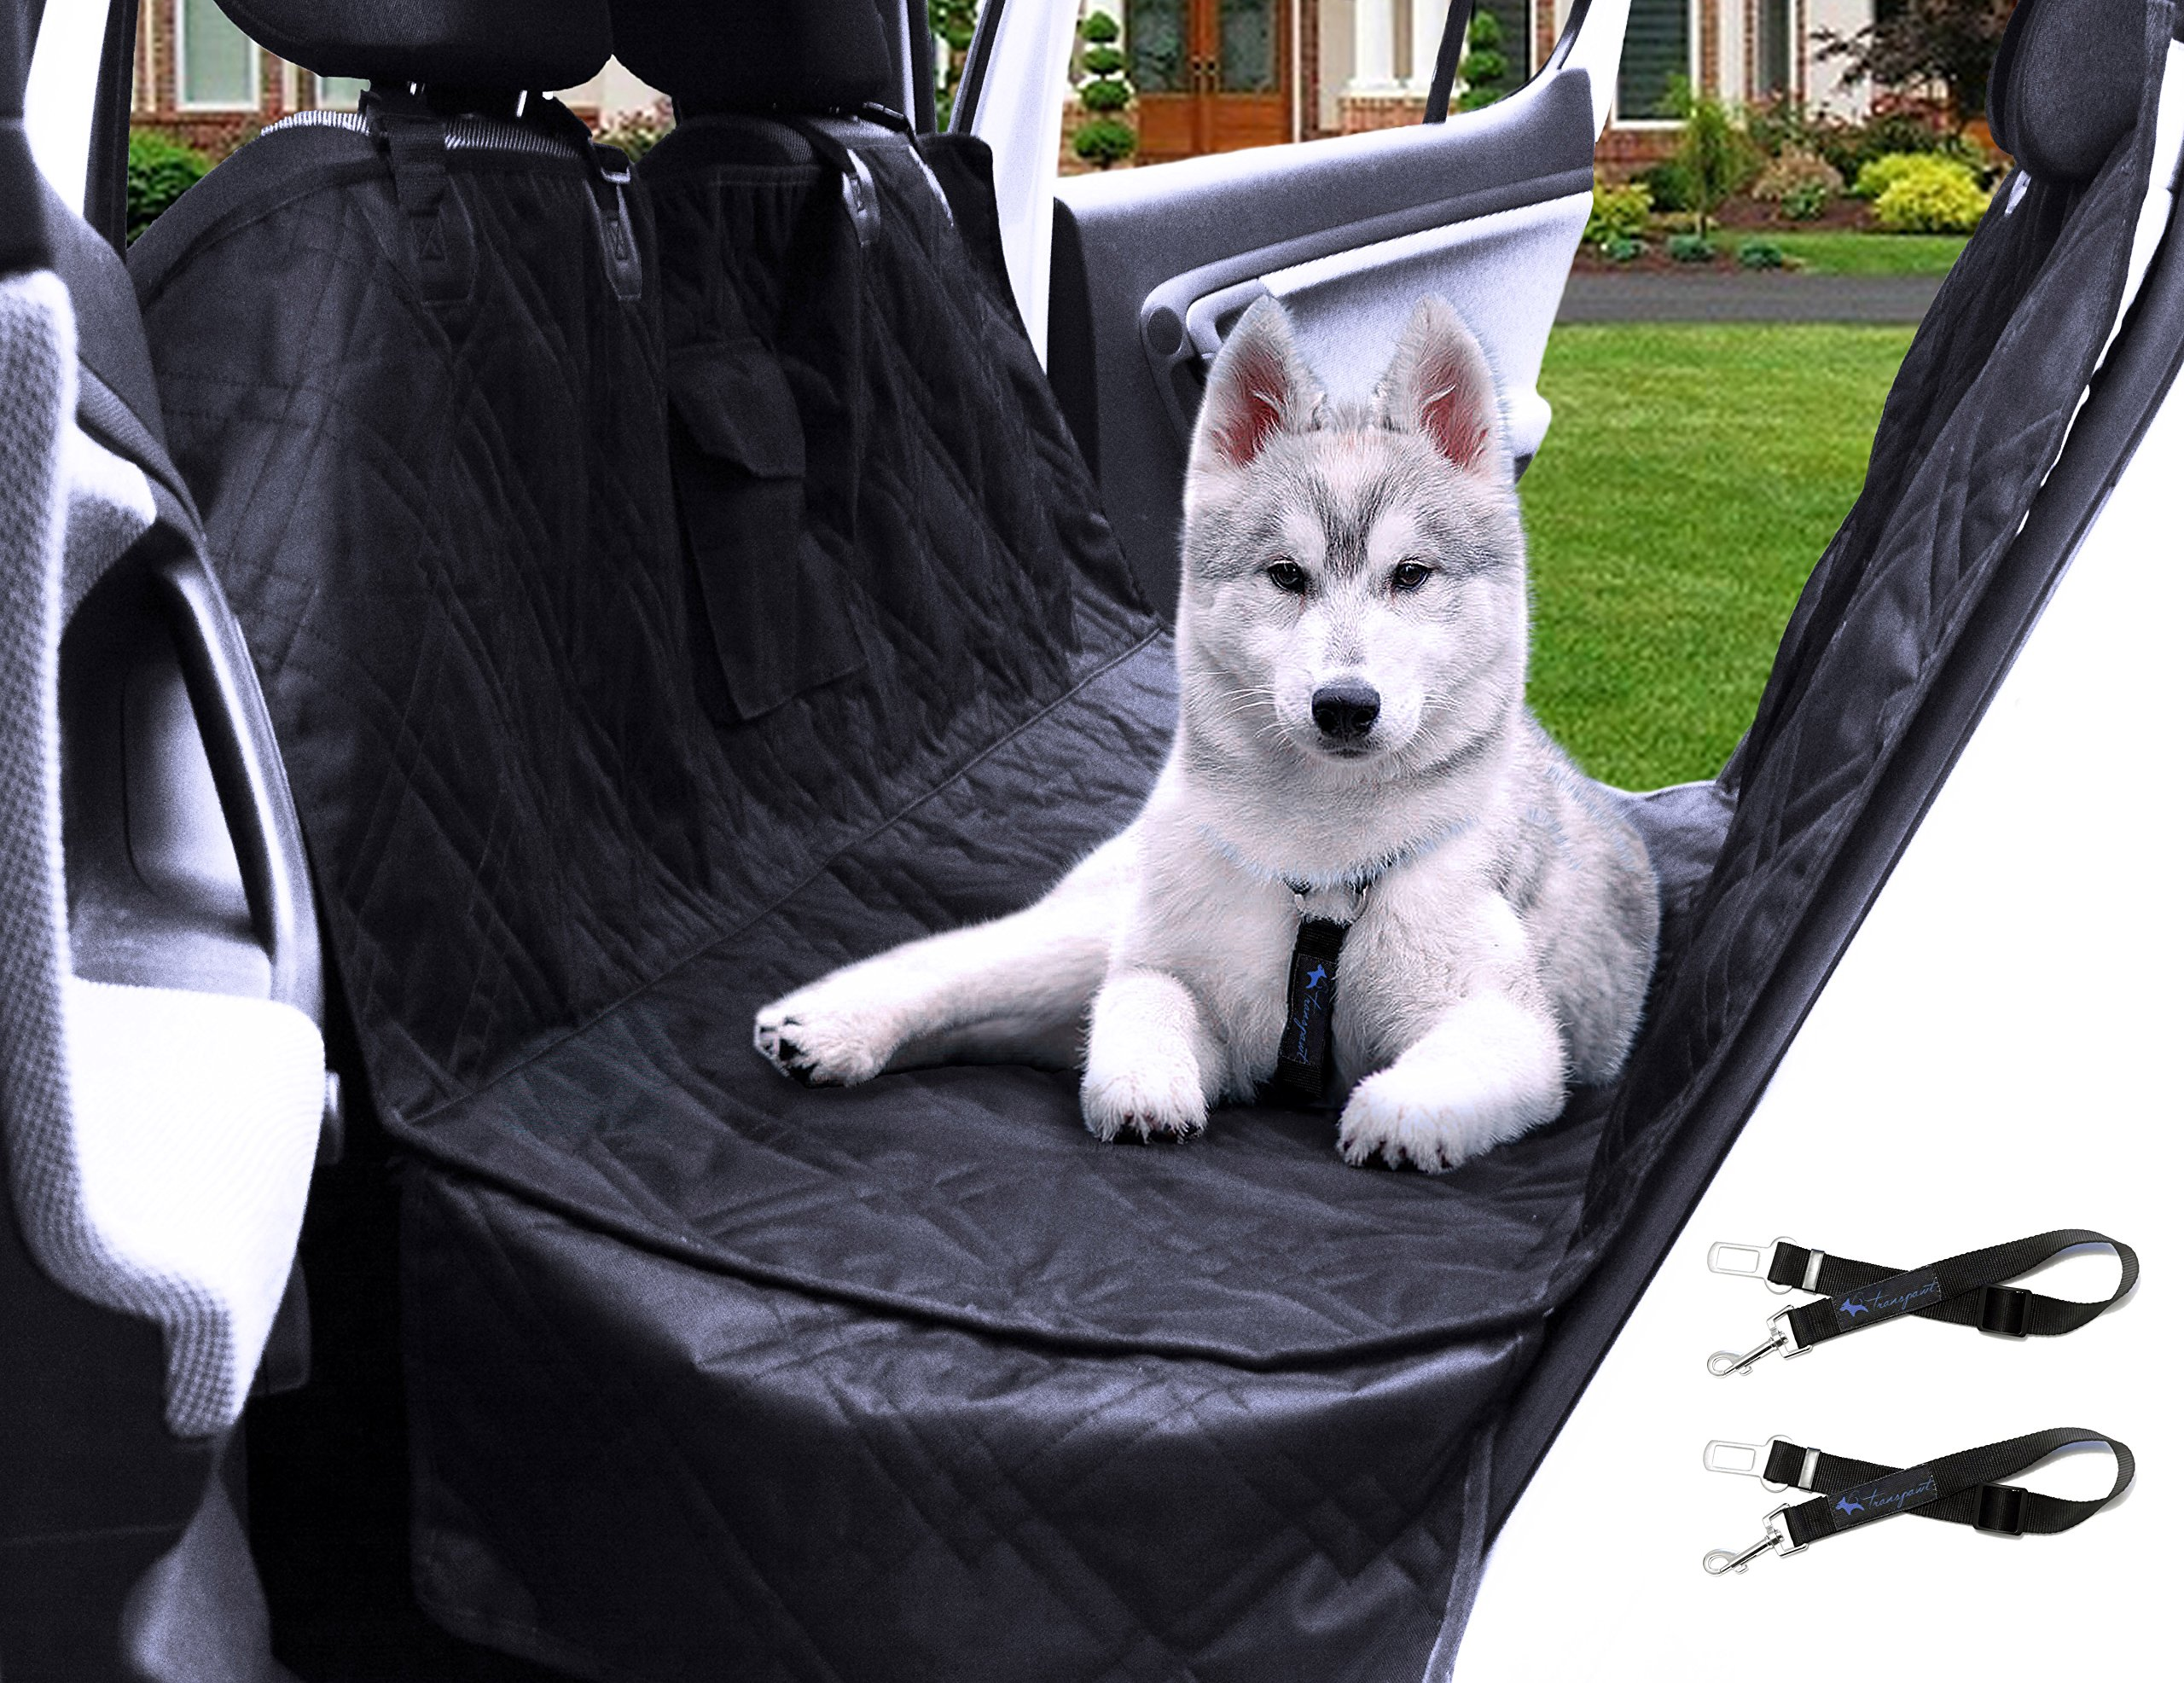 Transpawt Luxury Dog Car Seat Covers - Hammock Waterproof Pet Back Seat Cover for Cars, Trucks and SUVs - Black, 57''L x 55''W with additional 8'' Side Seat Protectors. Includes Bonus x2 Dog Seat Belts.